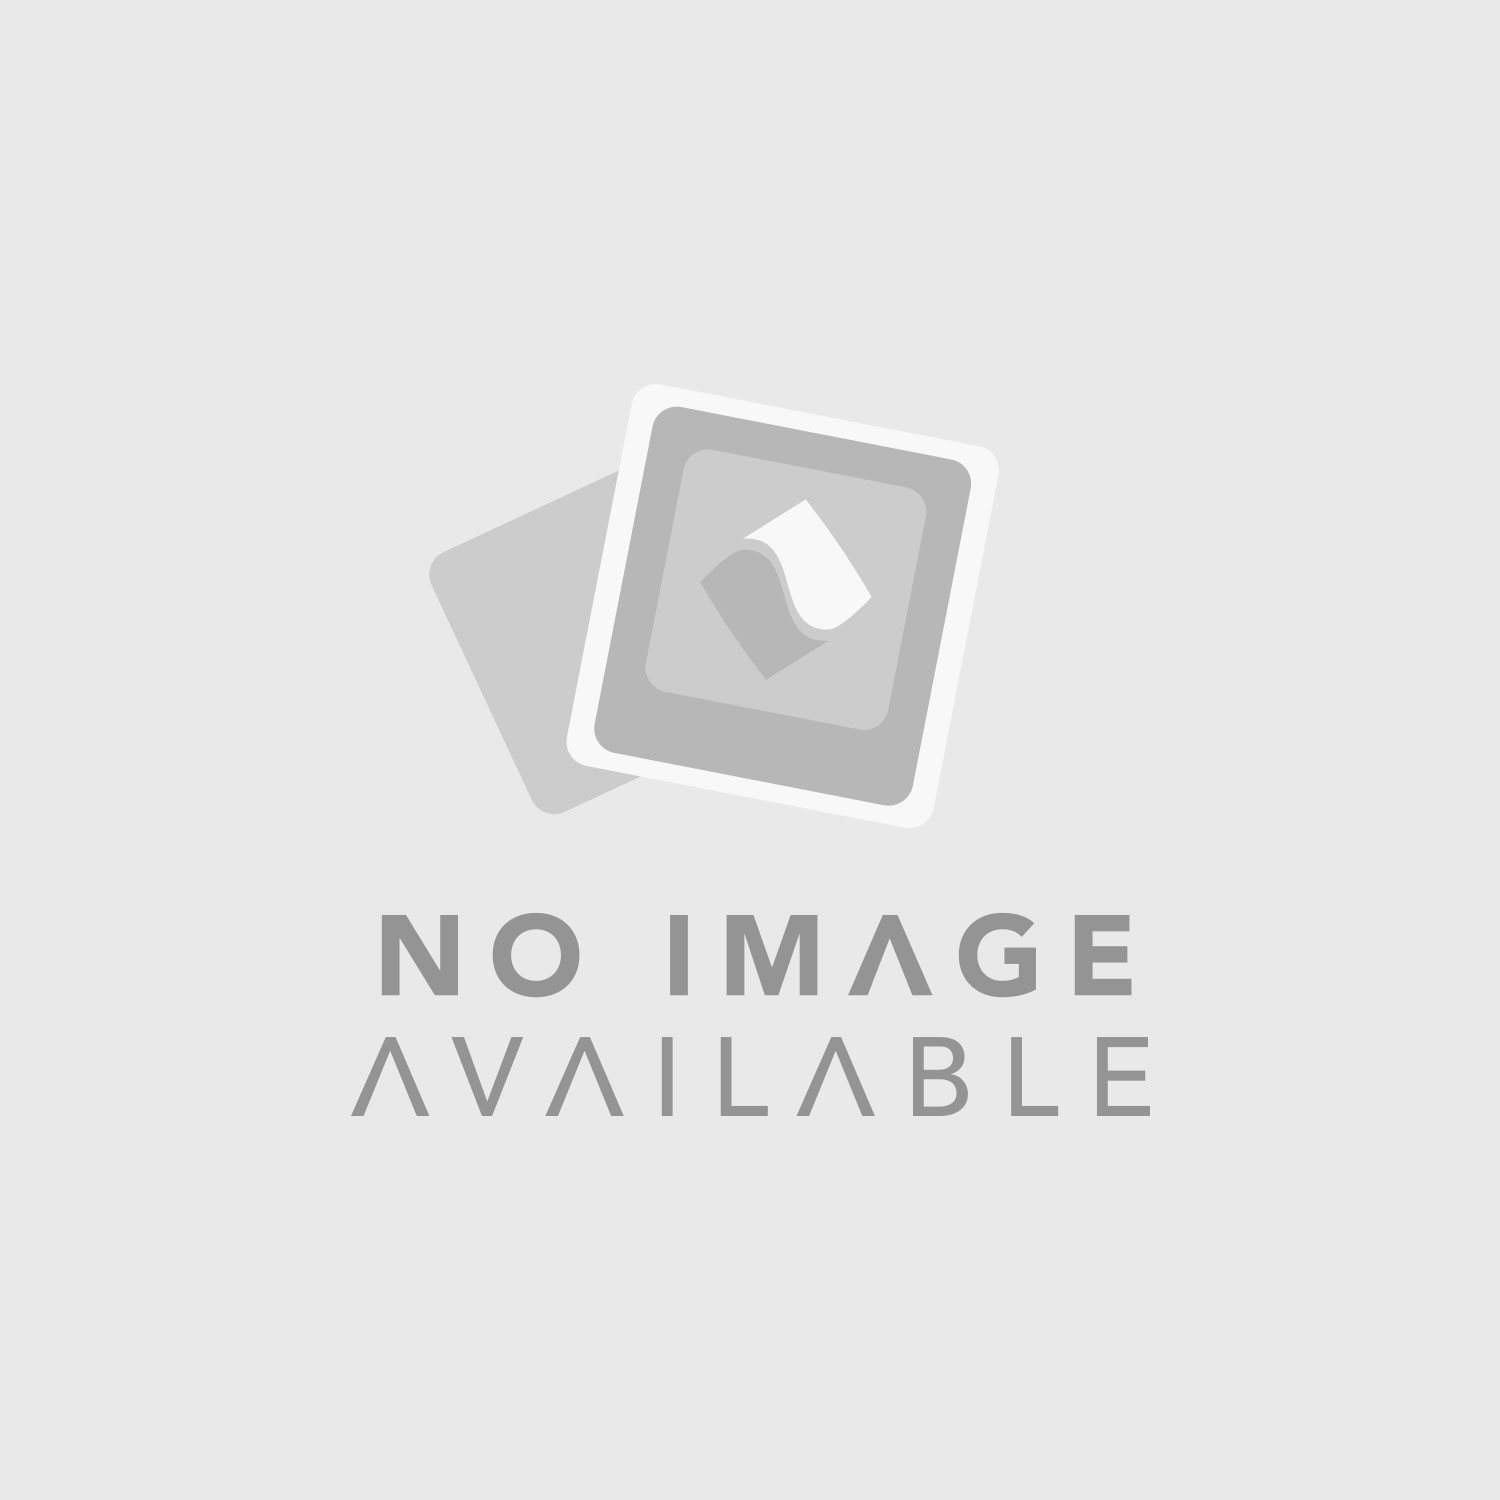 Neutrik NL4MP-2 4-Pole speakON Panel Mount Connector (Mirrored Mounting Holes)